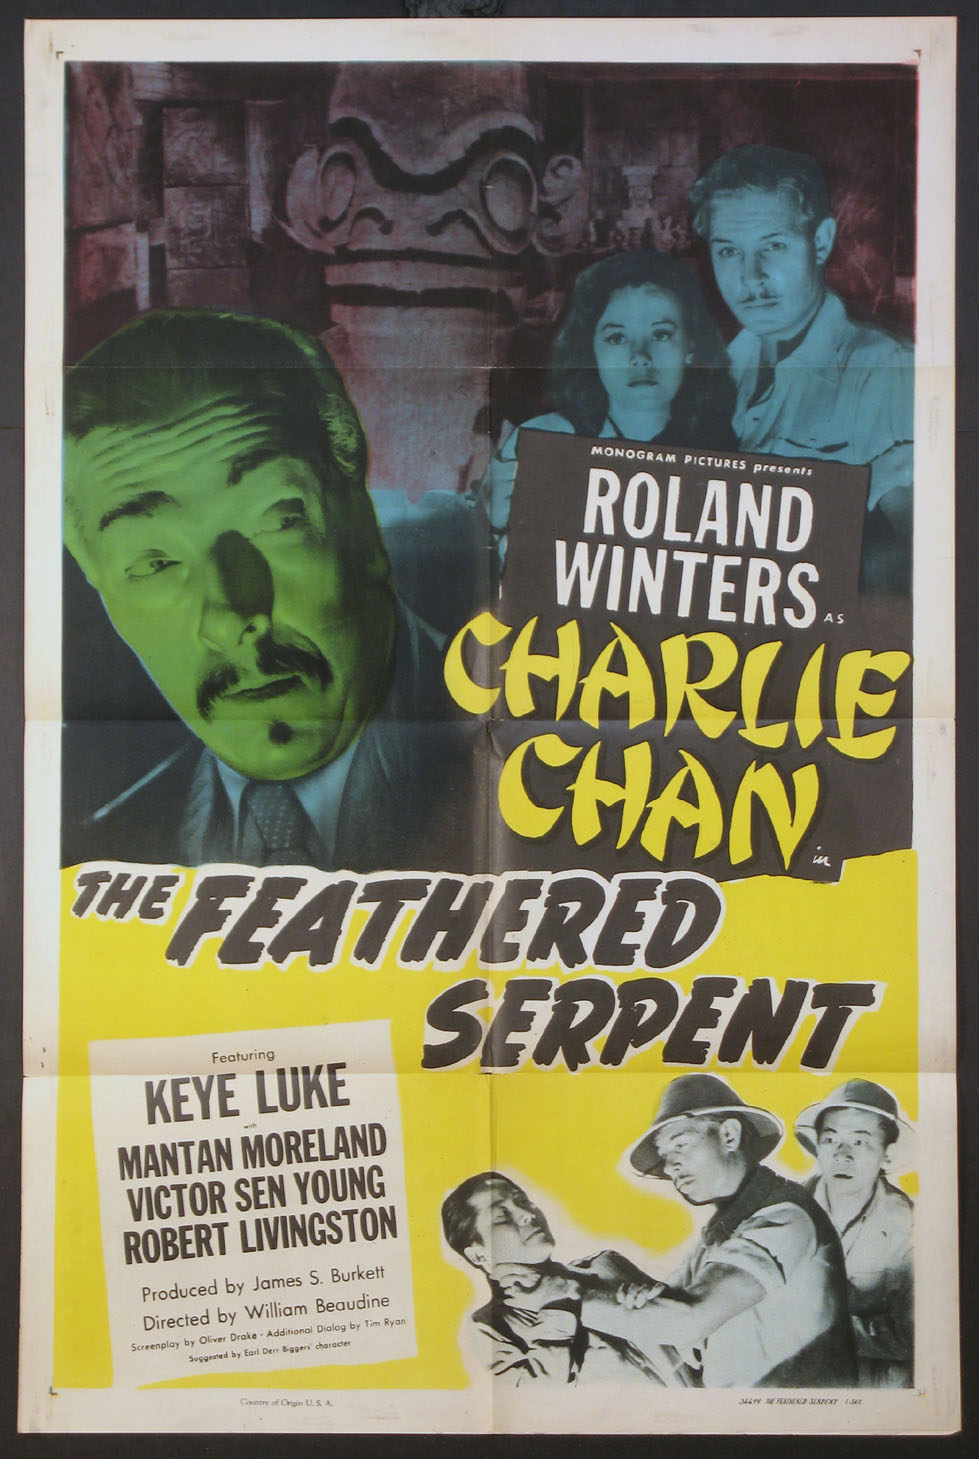 FEATHERED SERPENT, THE (Charlie Chan series) @ FilmPosters.com